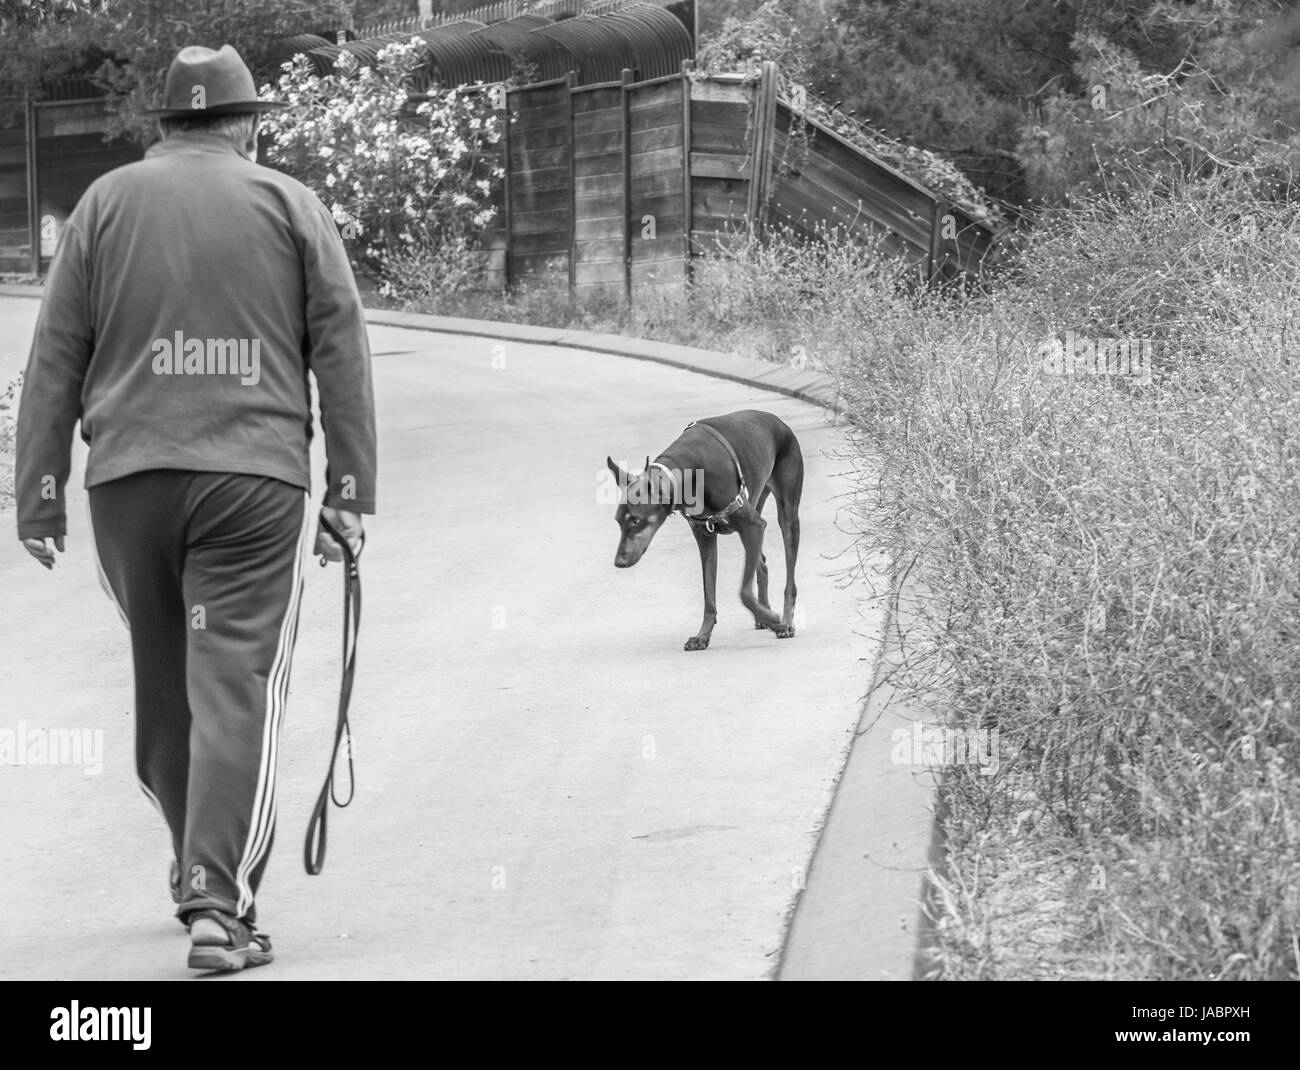 Man walking dobermann - Stock Image